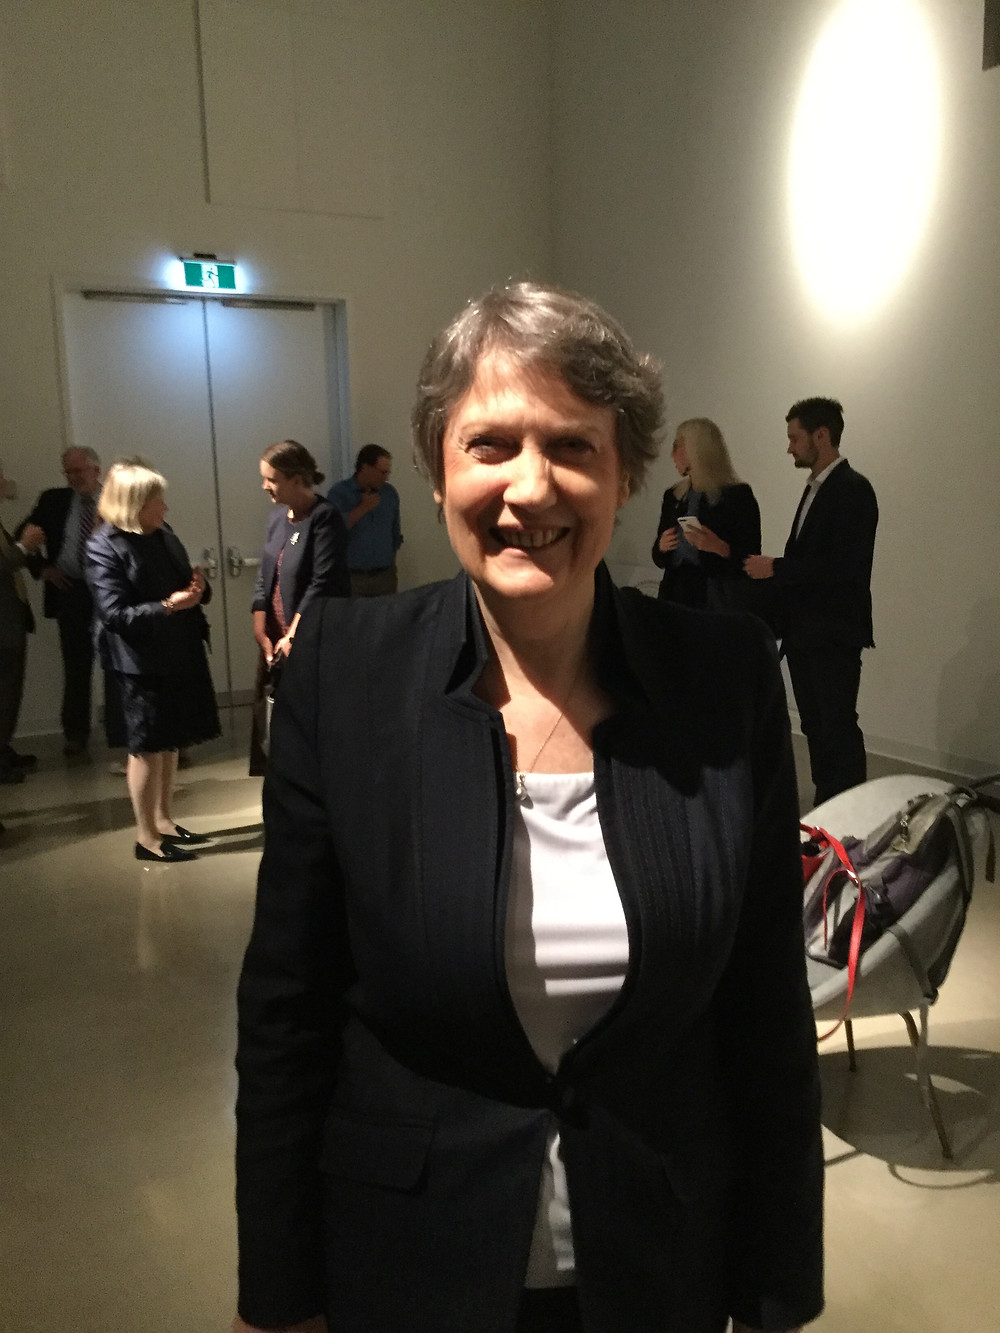 Former New Zealand Prime Minister Helen Clark at the Ottawa Art Gallery on June 11, 2018. Photo credit: Geoffrey P. Johnston